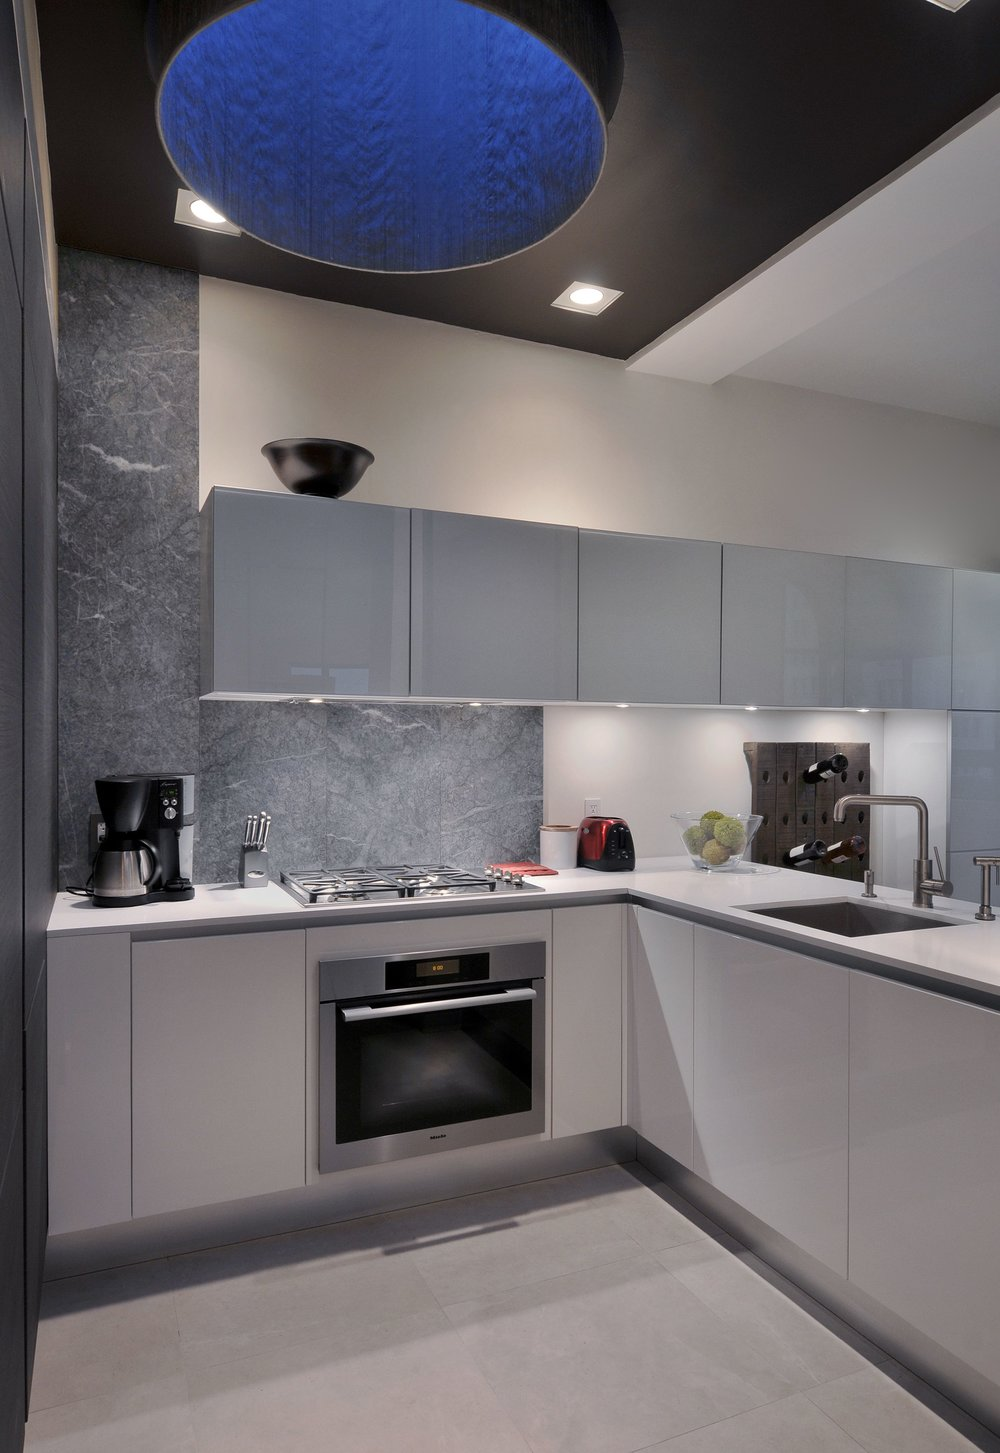 Contemporary style kitchen with range oven